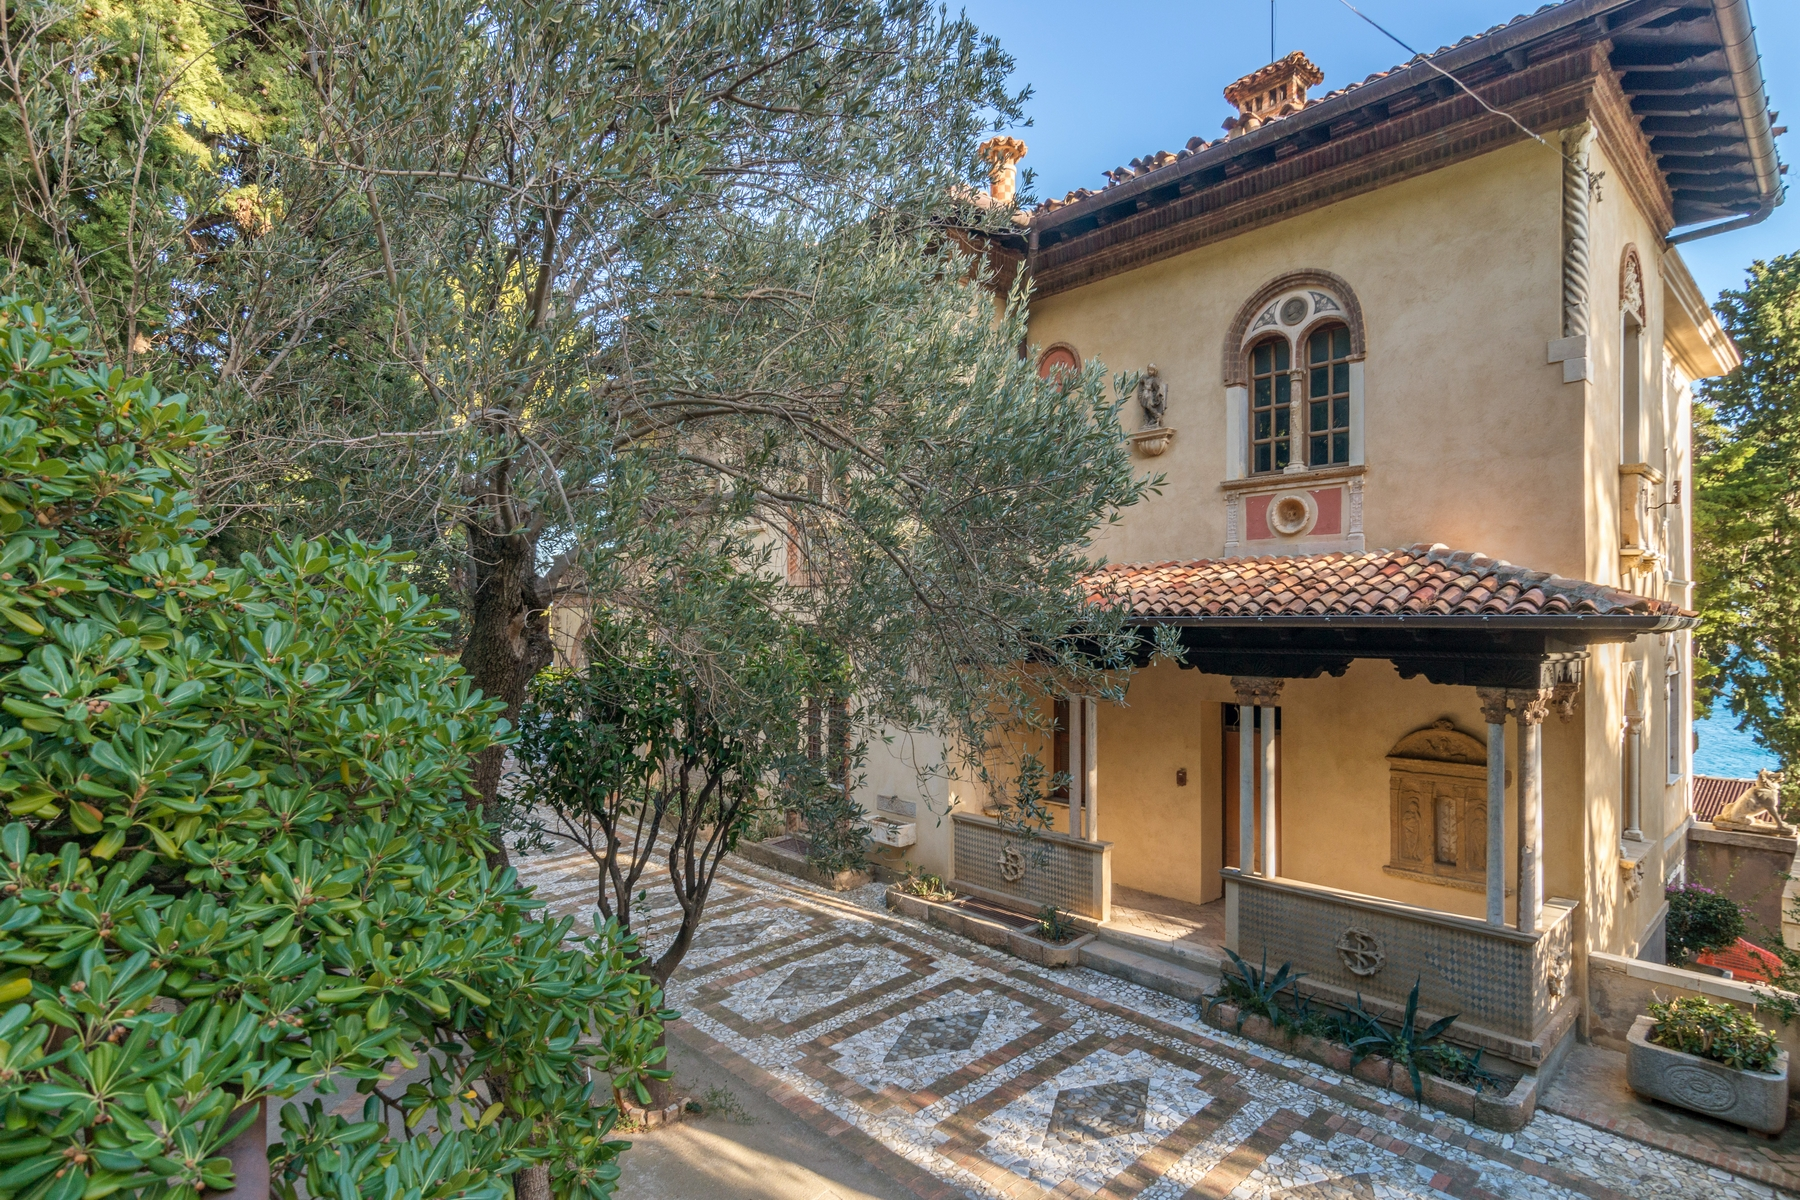 Additional photo for property listing at One-Of-A-Kind estate Pieds Dans L'Eau Alassio, Savona Italie